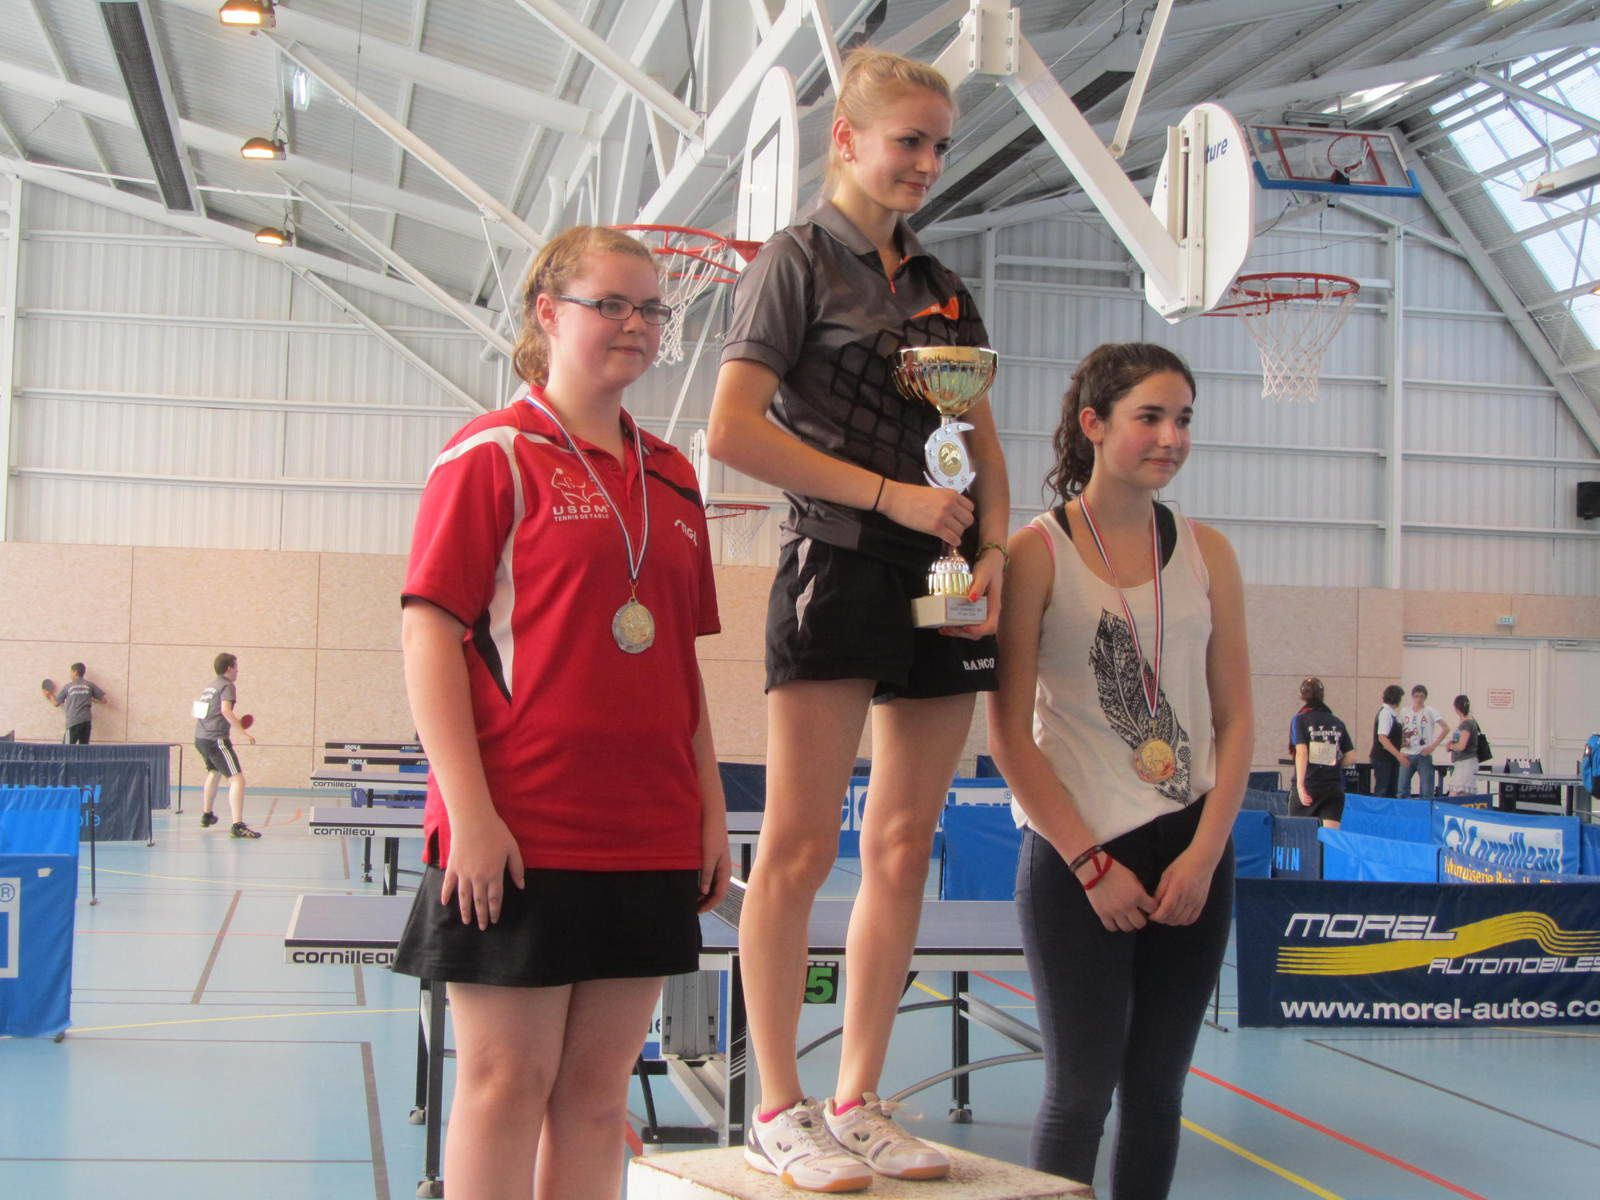 Elles sont sont championnes de basse normandie saint - Ligue de basse normandie de tennis de table ...